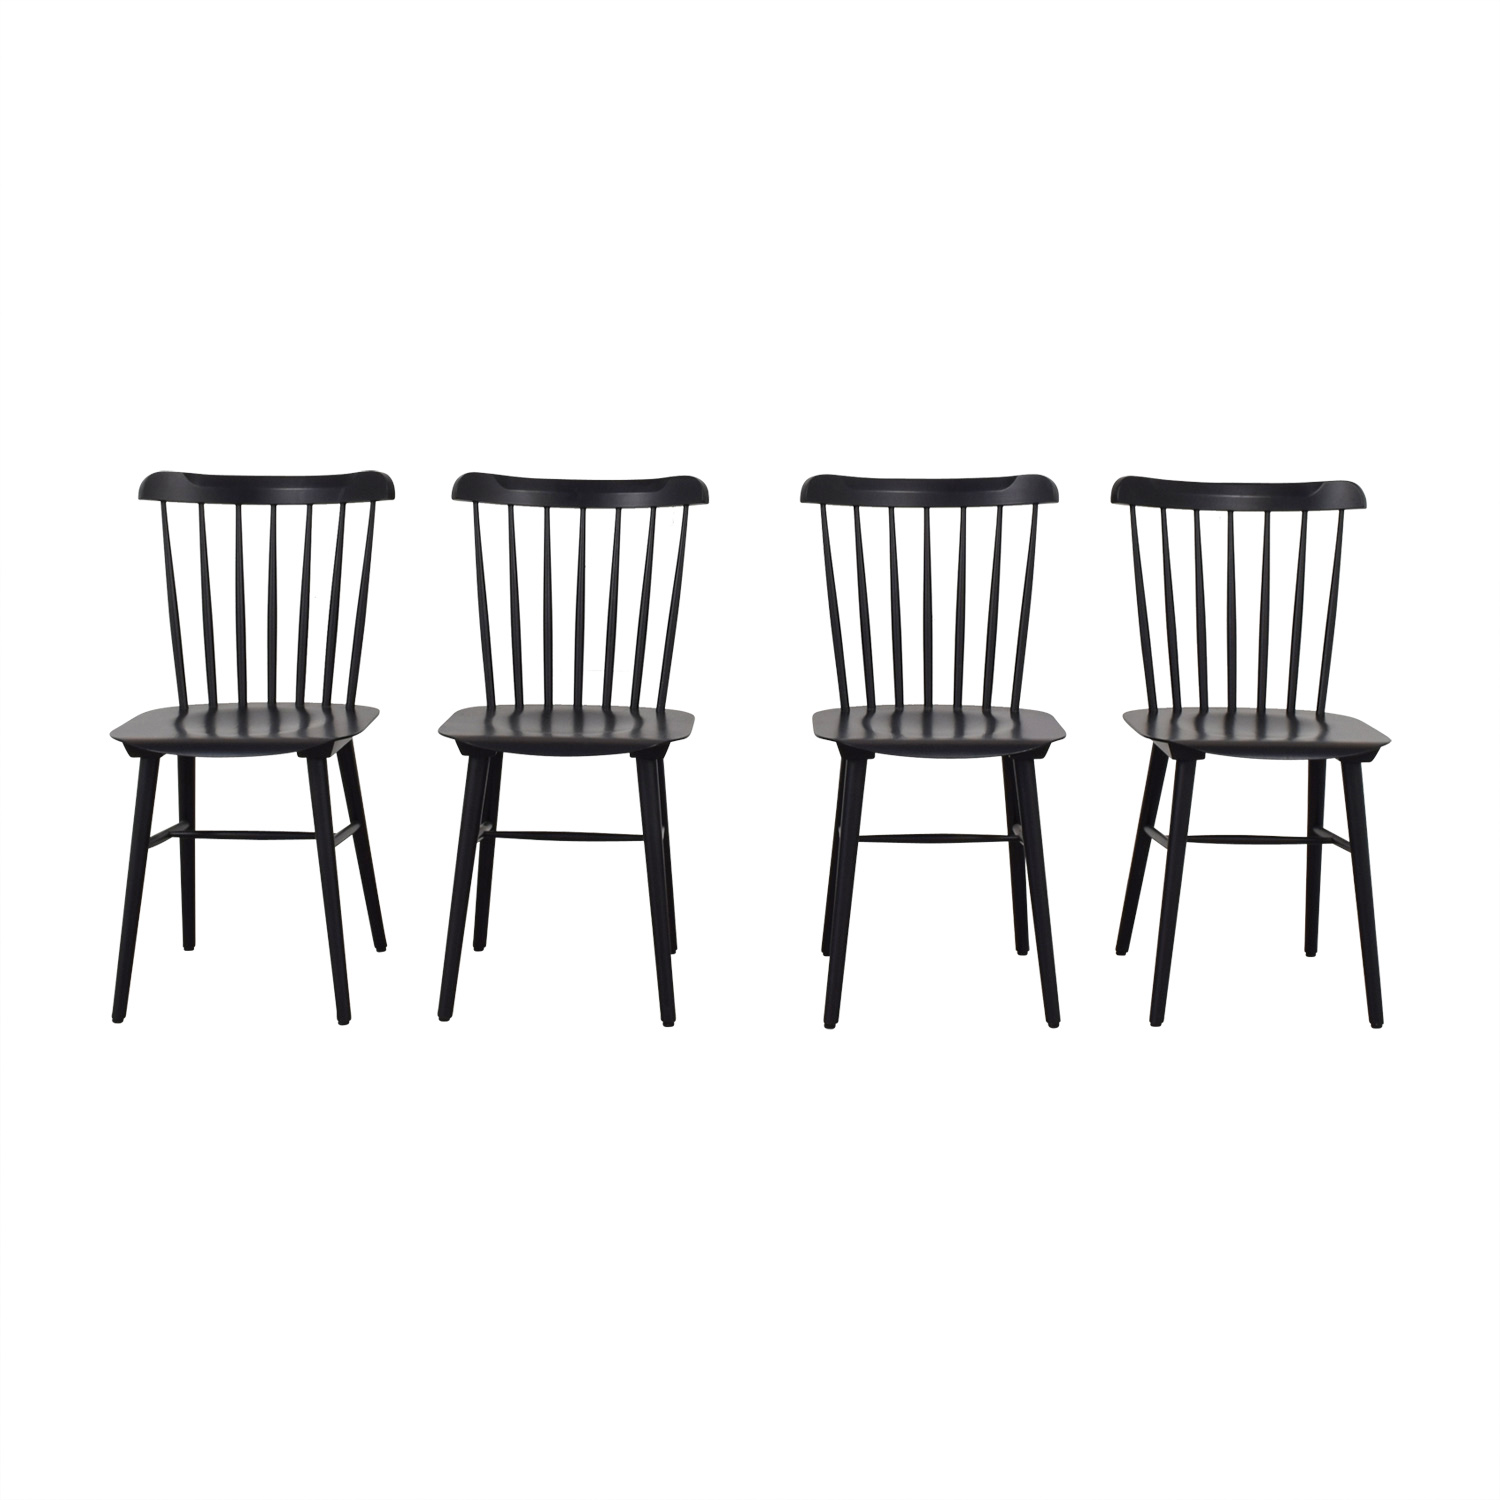 Designer Chairs Used Dining Chairs Used Dining Chairs For Sale